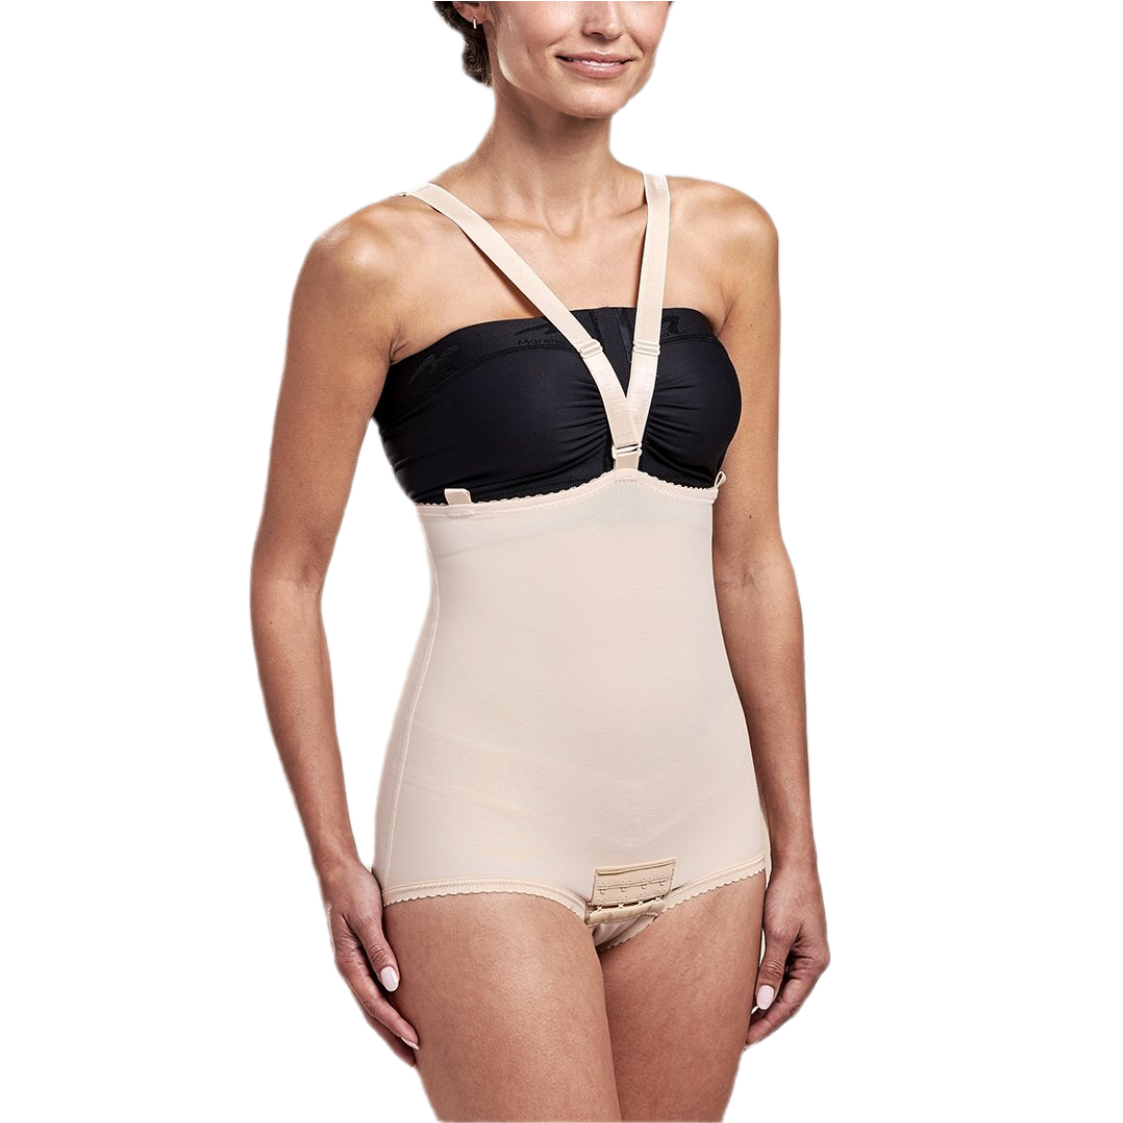 Zipperless Girdle With Suspenders Bikini Length FBA2